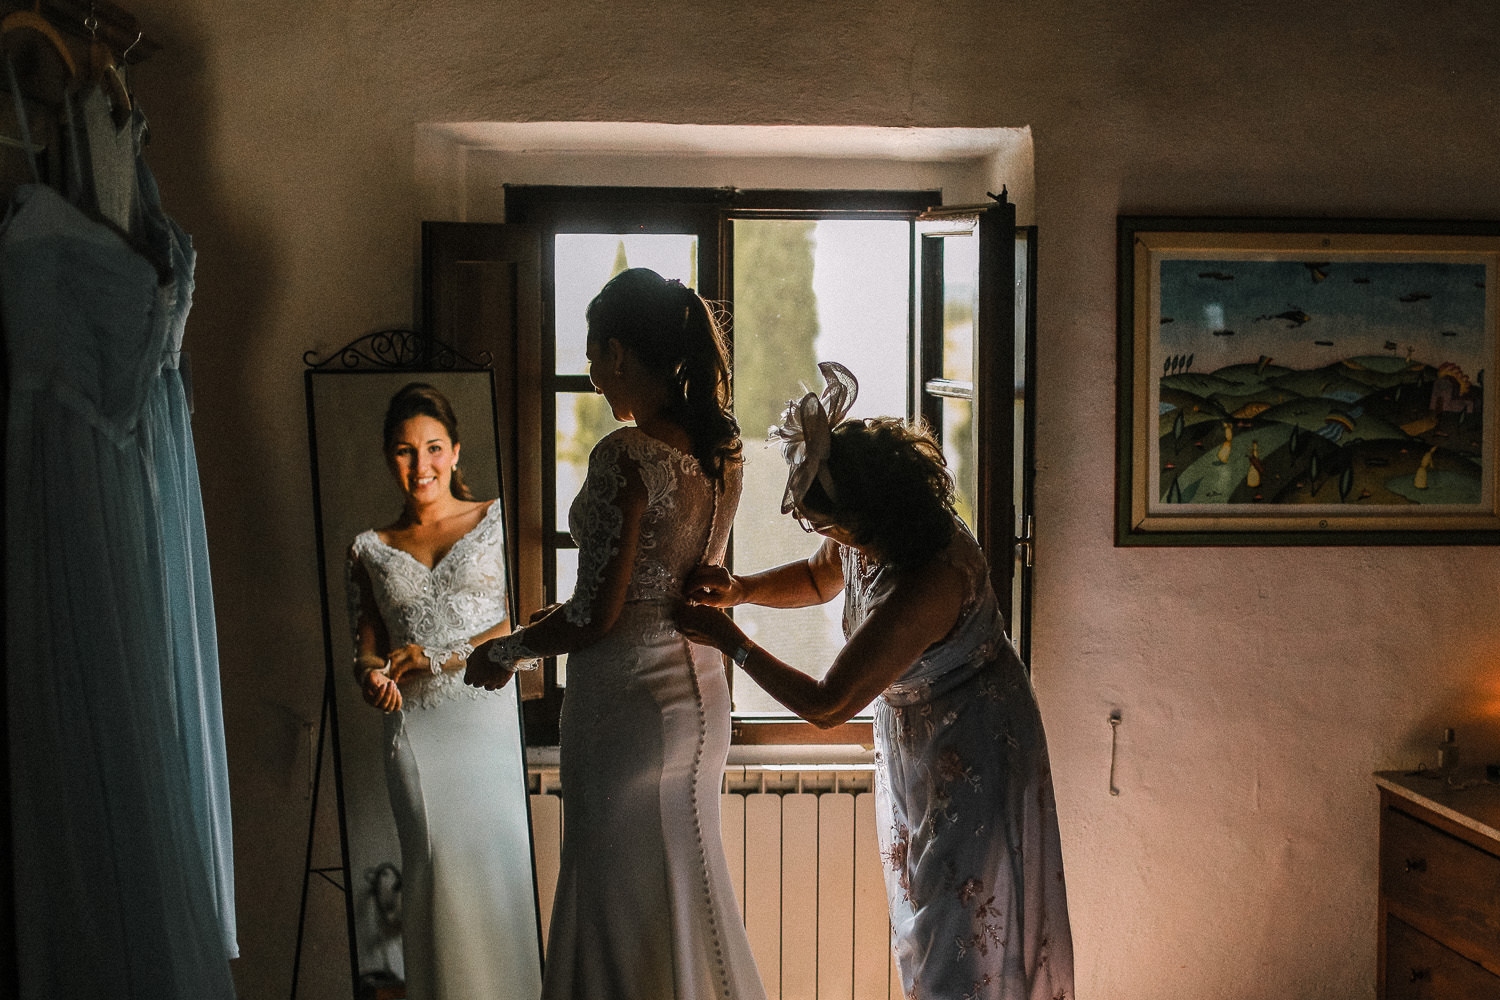 Mum helping daughter into her Essence of Australia wedding dress at Fattoria la loggia in Tuscany